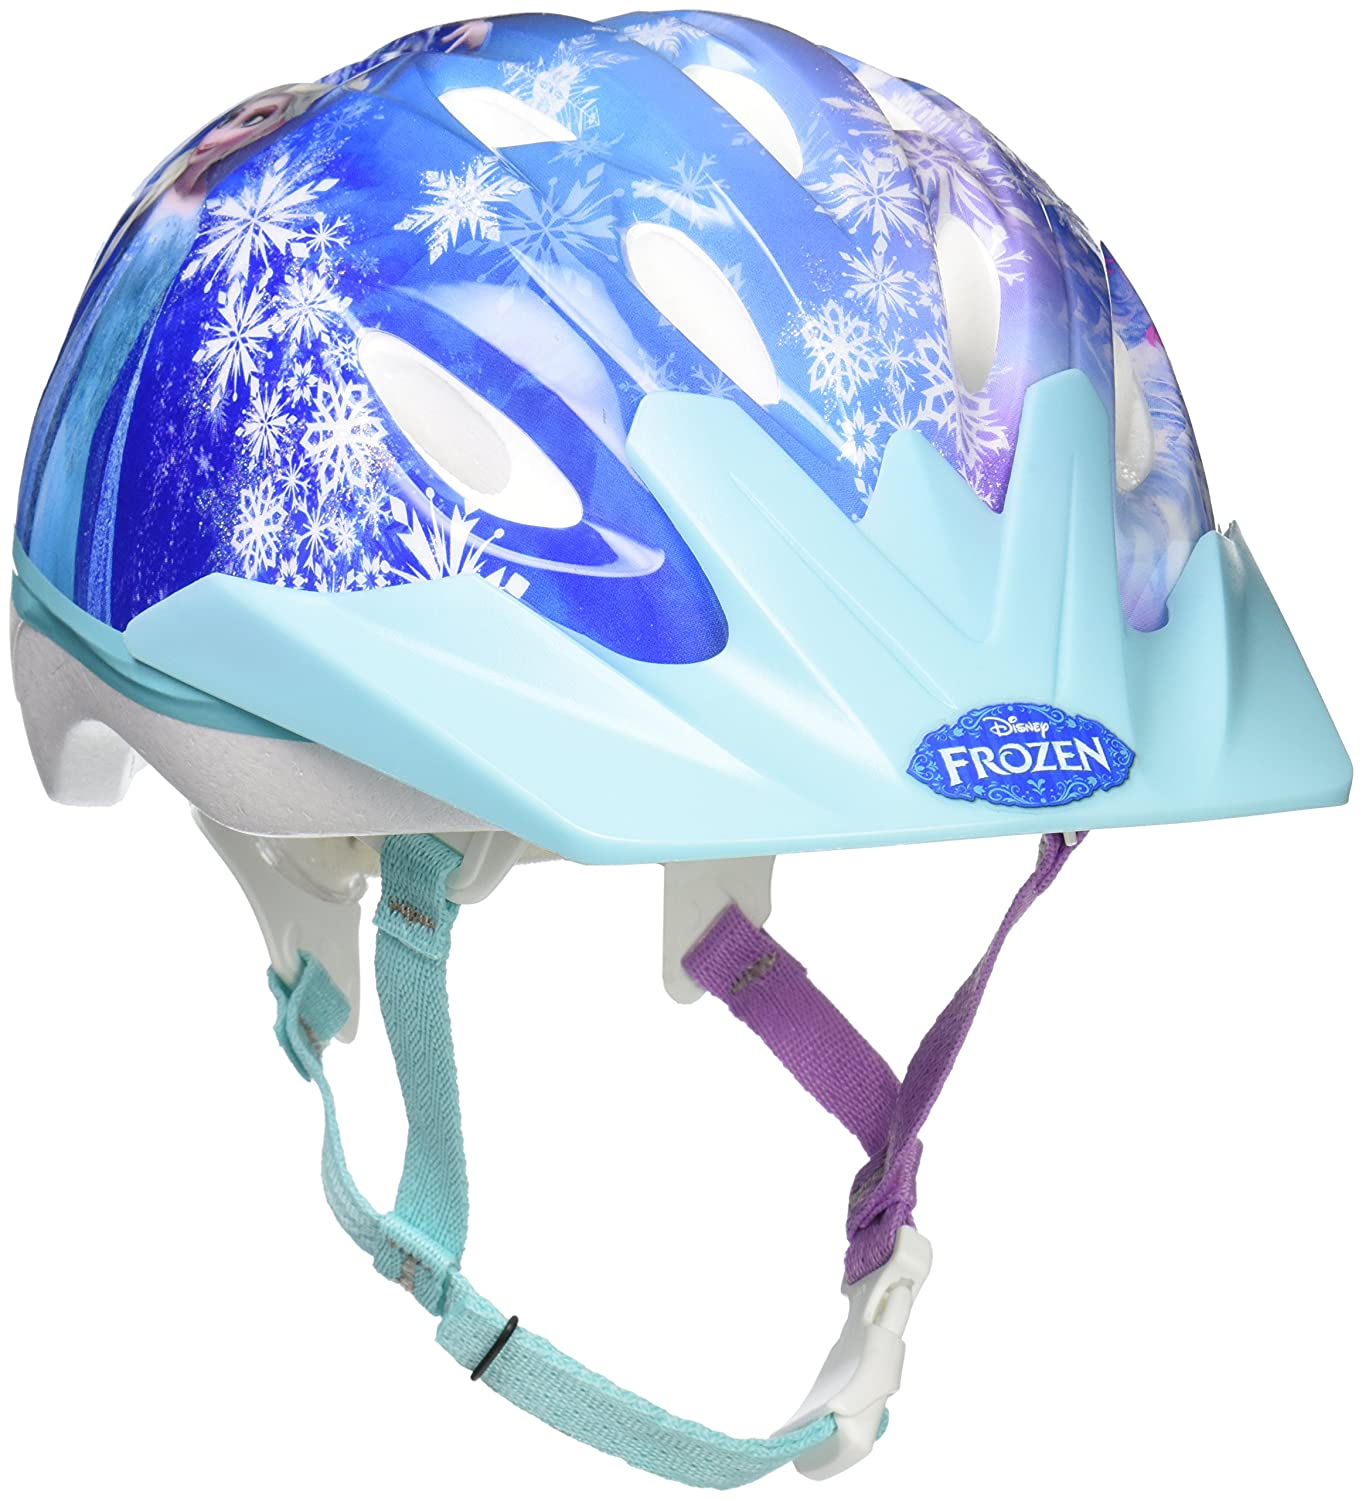 Disney Frozen Childs Bike Helm...